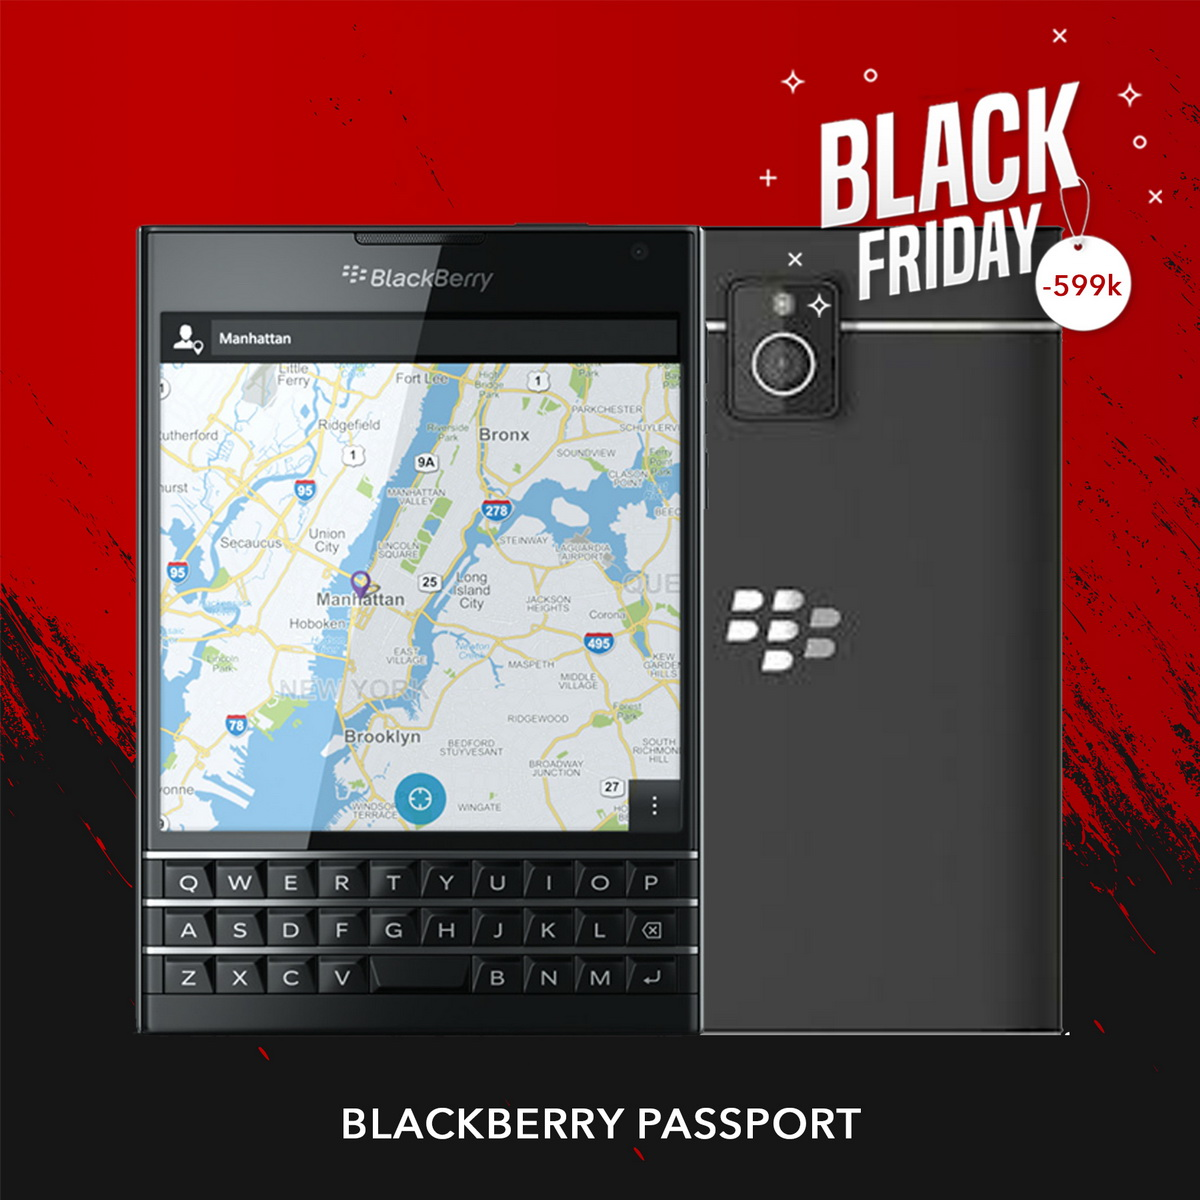 Blackberry Passport |  Black Friday